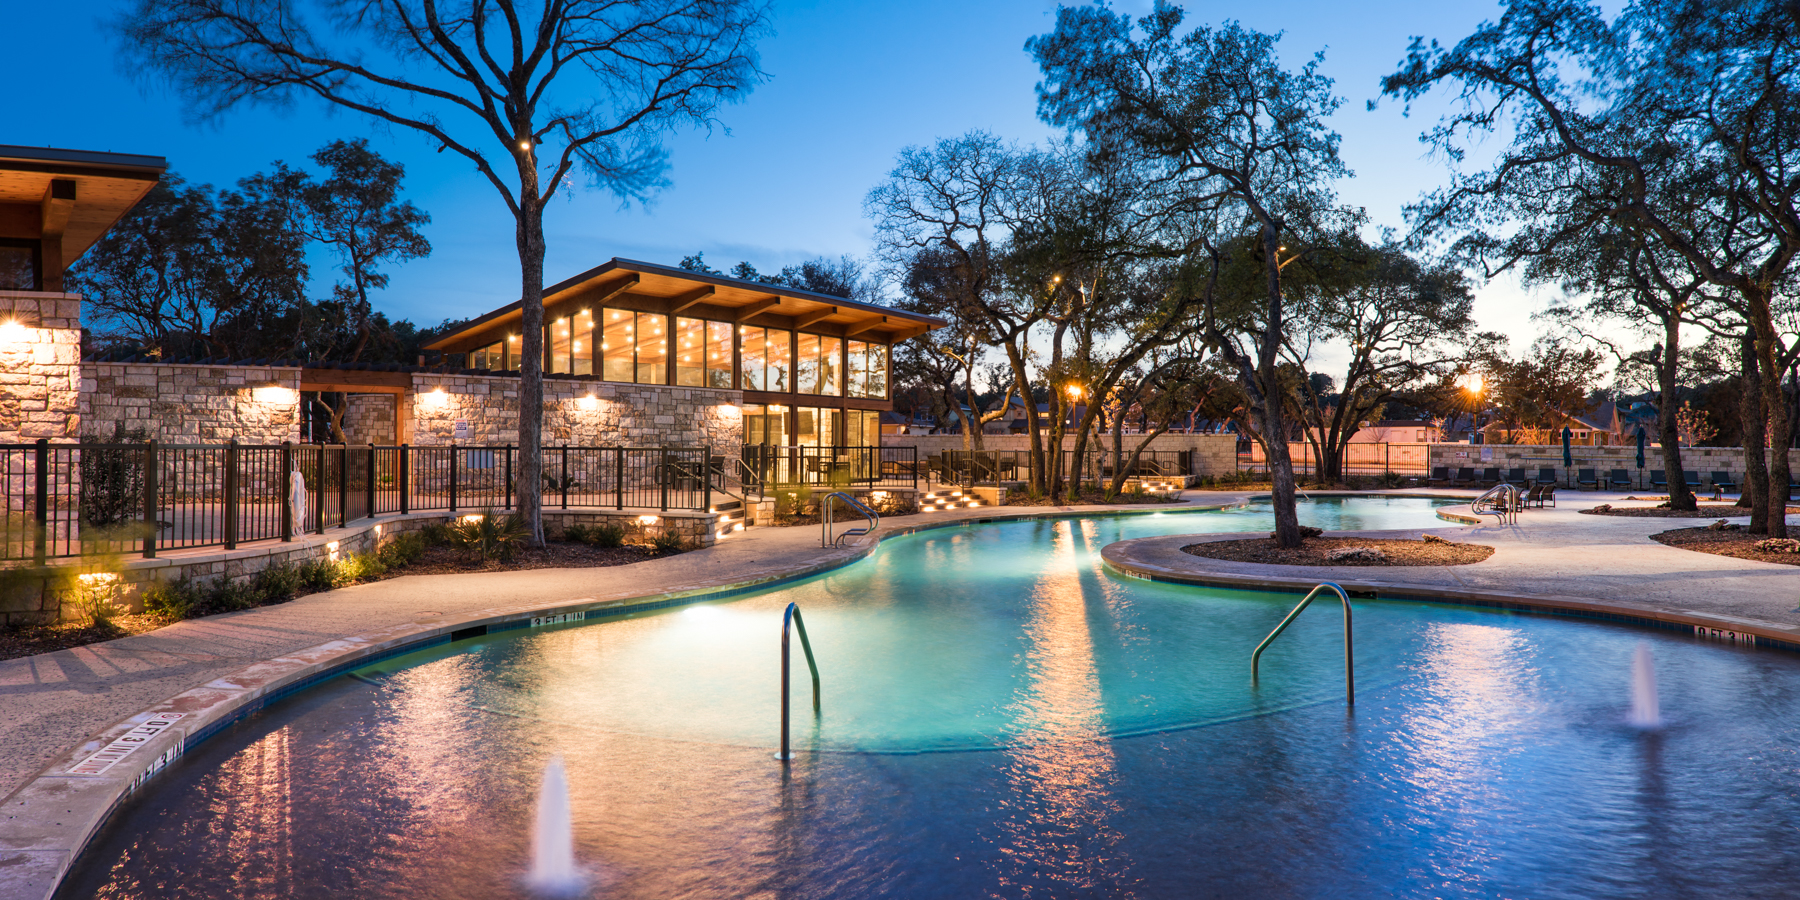 Northwoods at avery ranch amenity center awarded 5 star for Pool design center